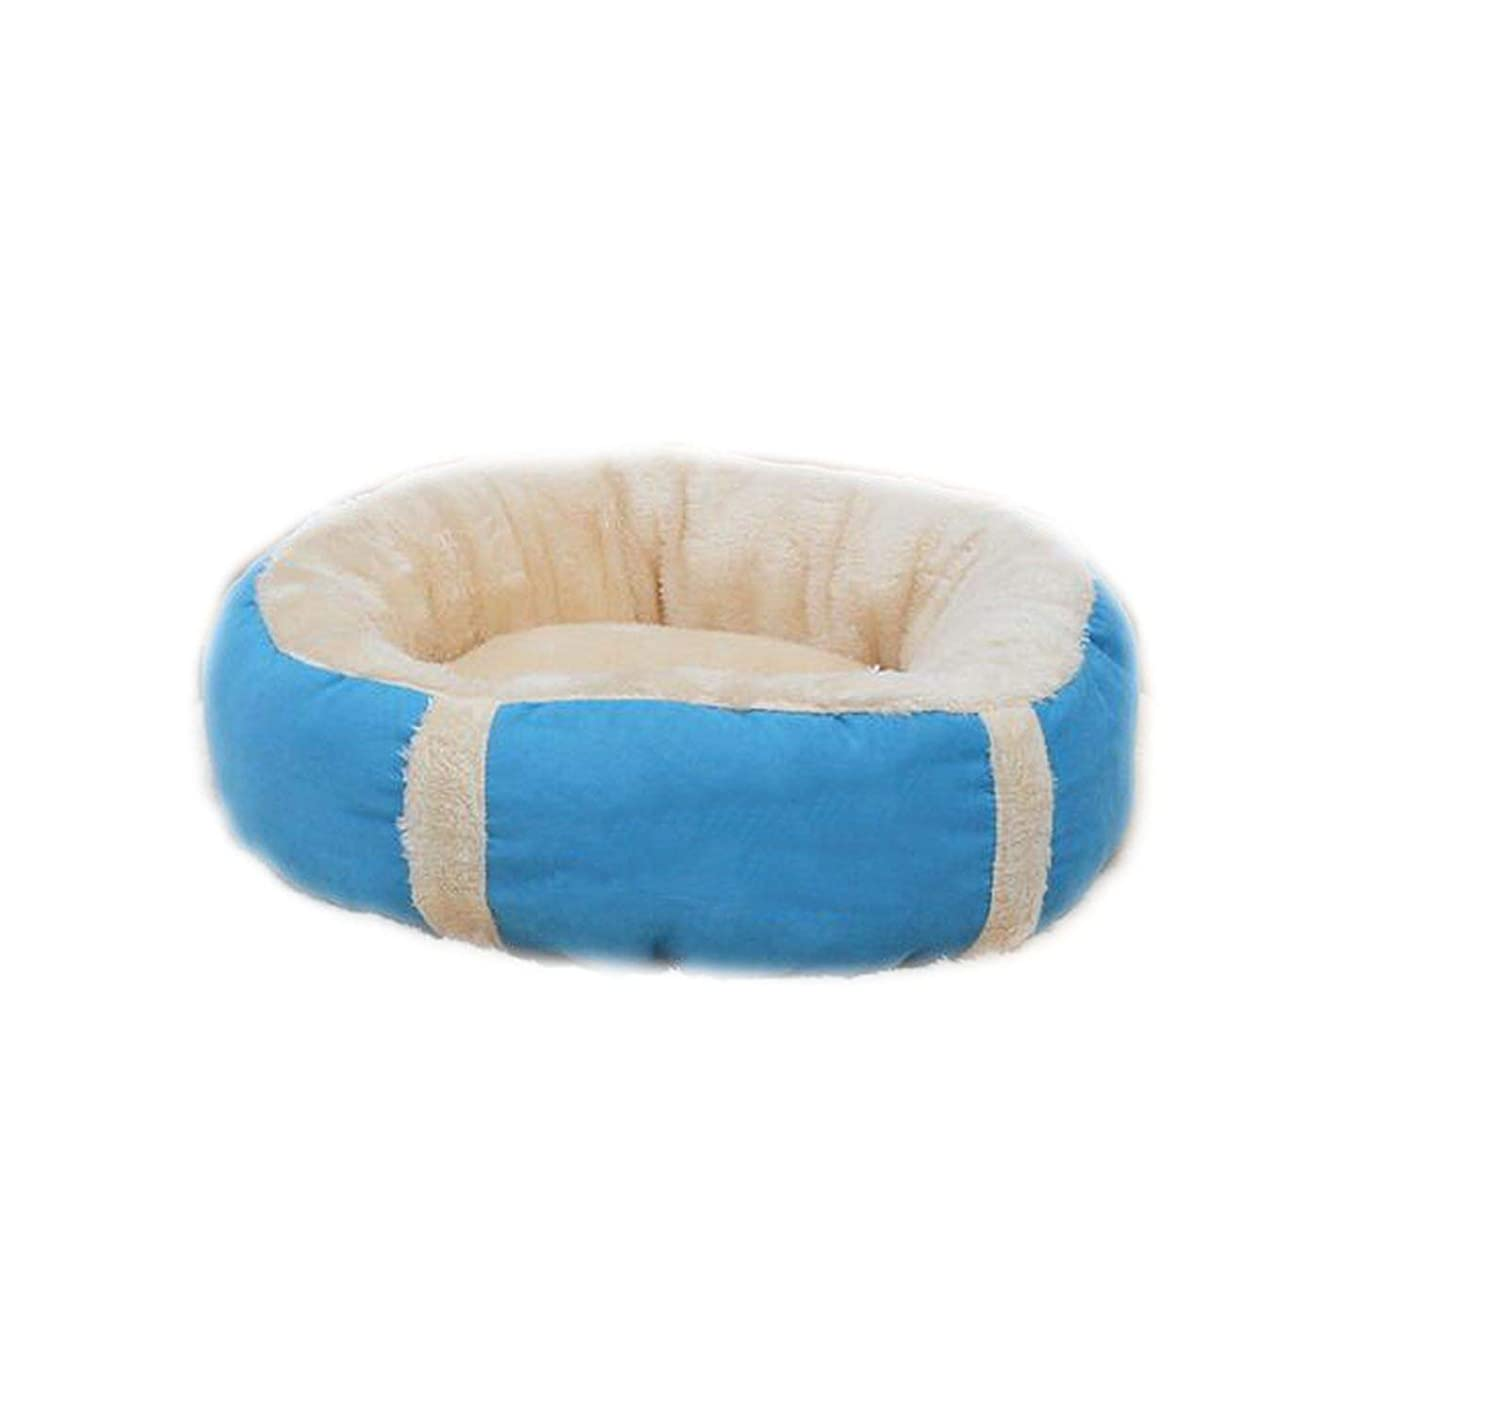 bluee M 50cm bluee M 50cm Removable Pet Dog Beds Warming Dog Cat Bed House Nest for Puppy Cat Pets Sofa Mat Cushion,bluee,M 50cm